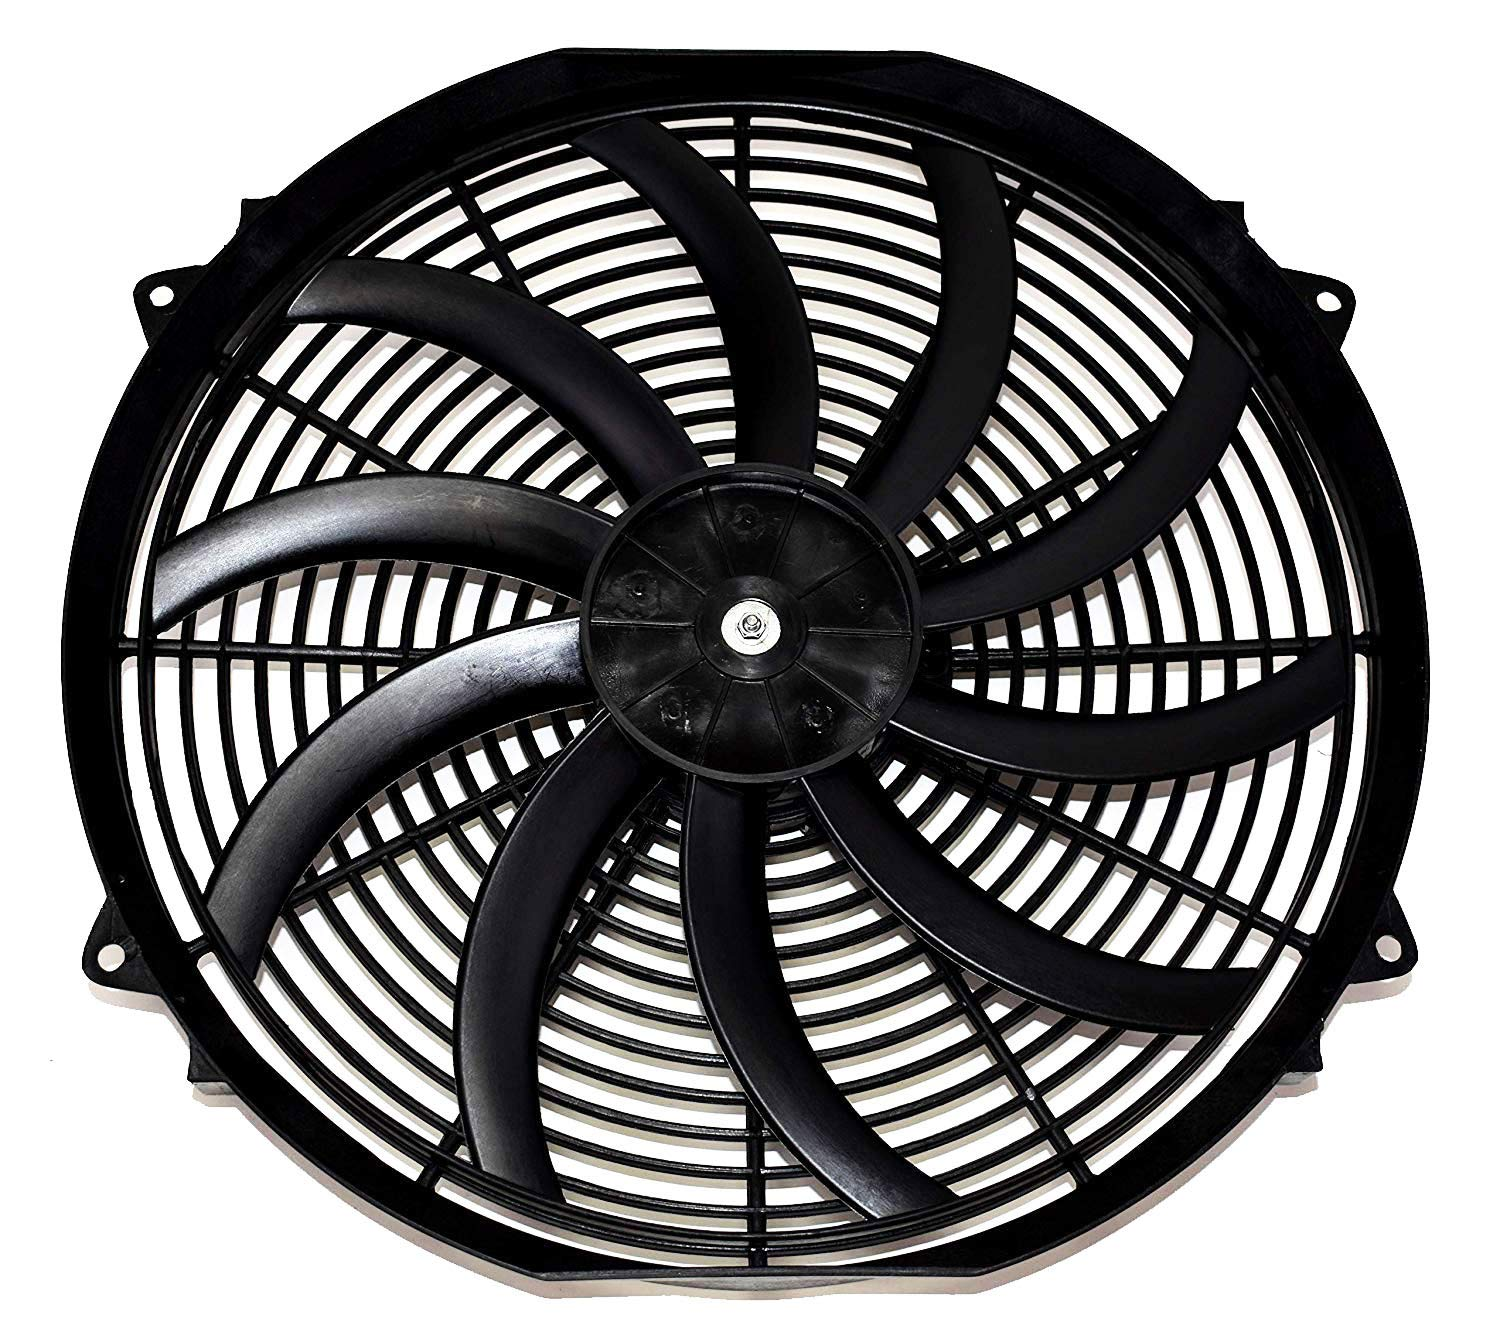 A-Team Performance 140041 16'' Heavy Duty 12V Radiator Electric Wide Curved S Blade FAN & Thermostat Kit, 3000 CFM Reversible Push or Pull with Mounting Kit by A-Team Performance (Image #3)